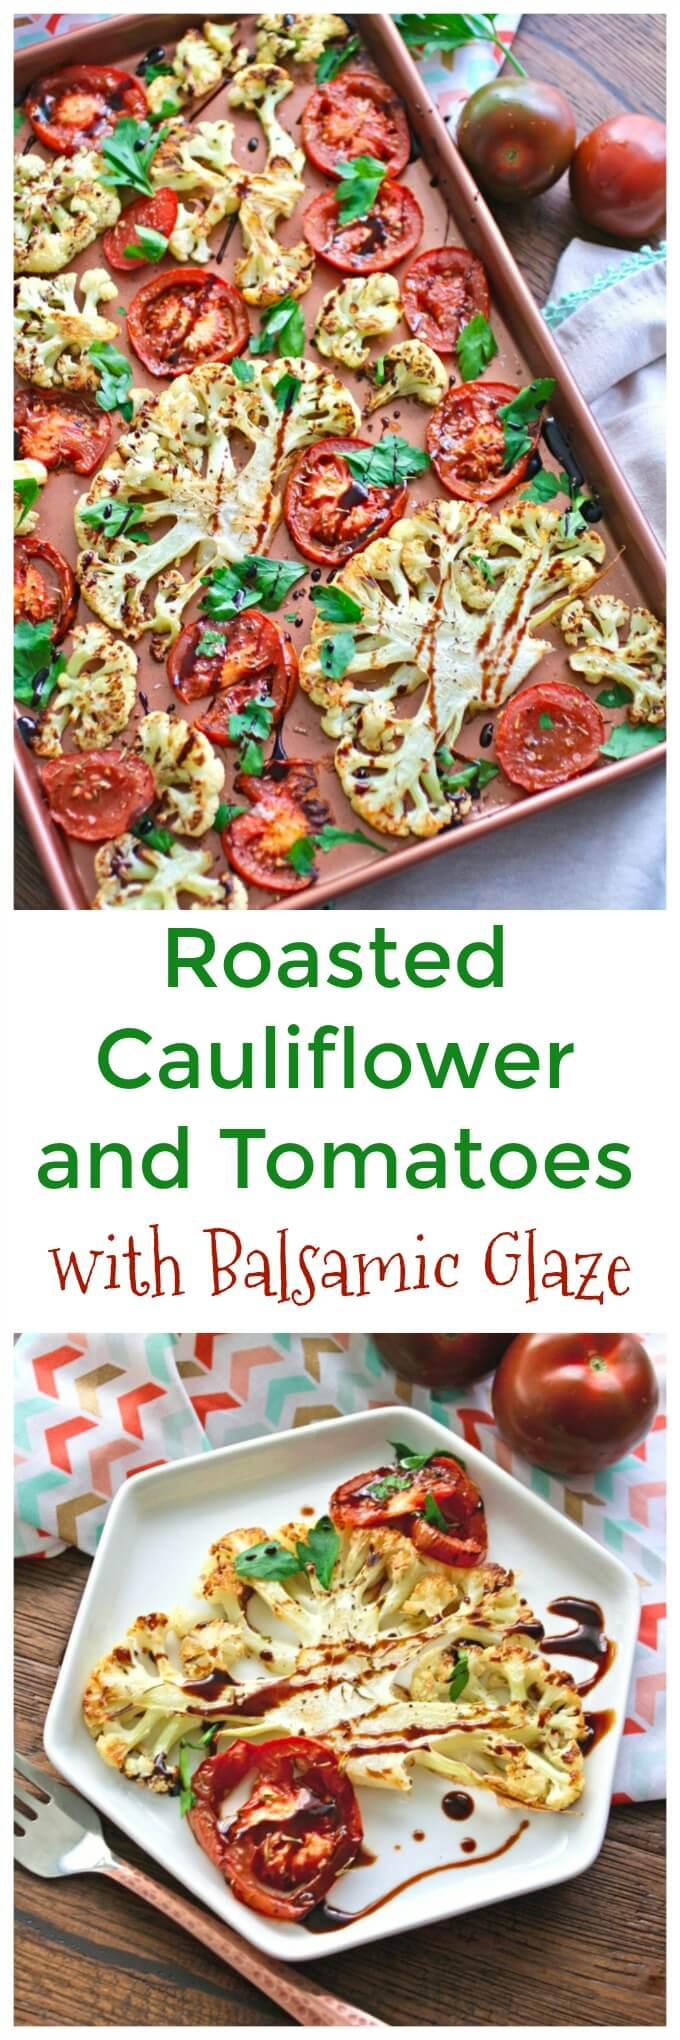 Roasted Cauliflower and Tomatoes with Balsamic Glaze is perfect as a side. You could aslo serve it as part of a meatless main dish meal.